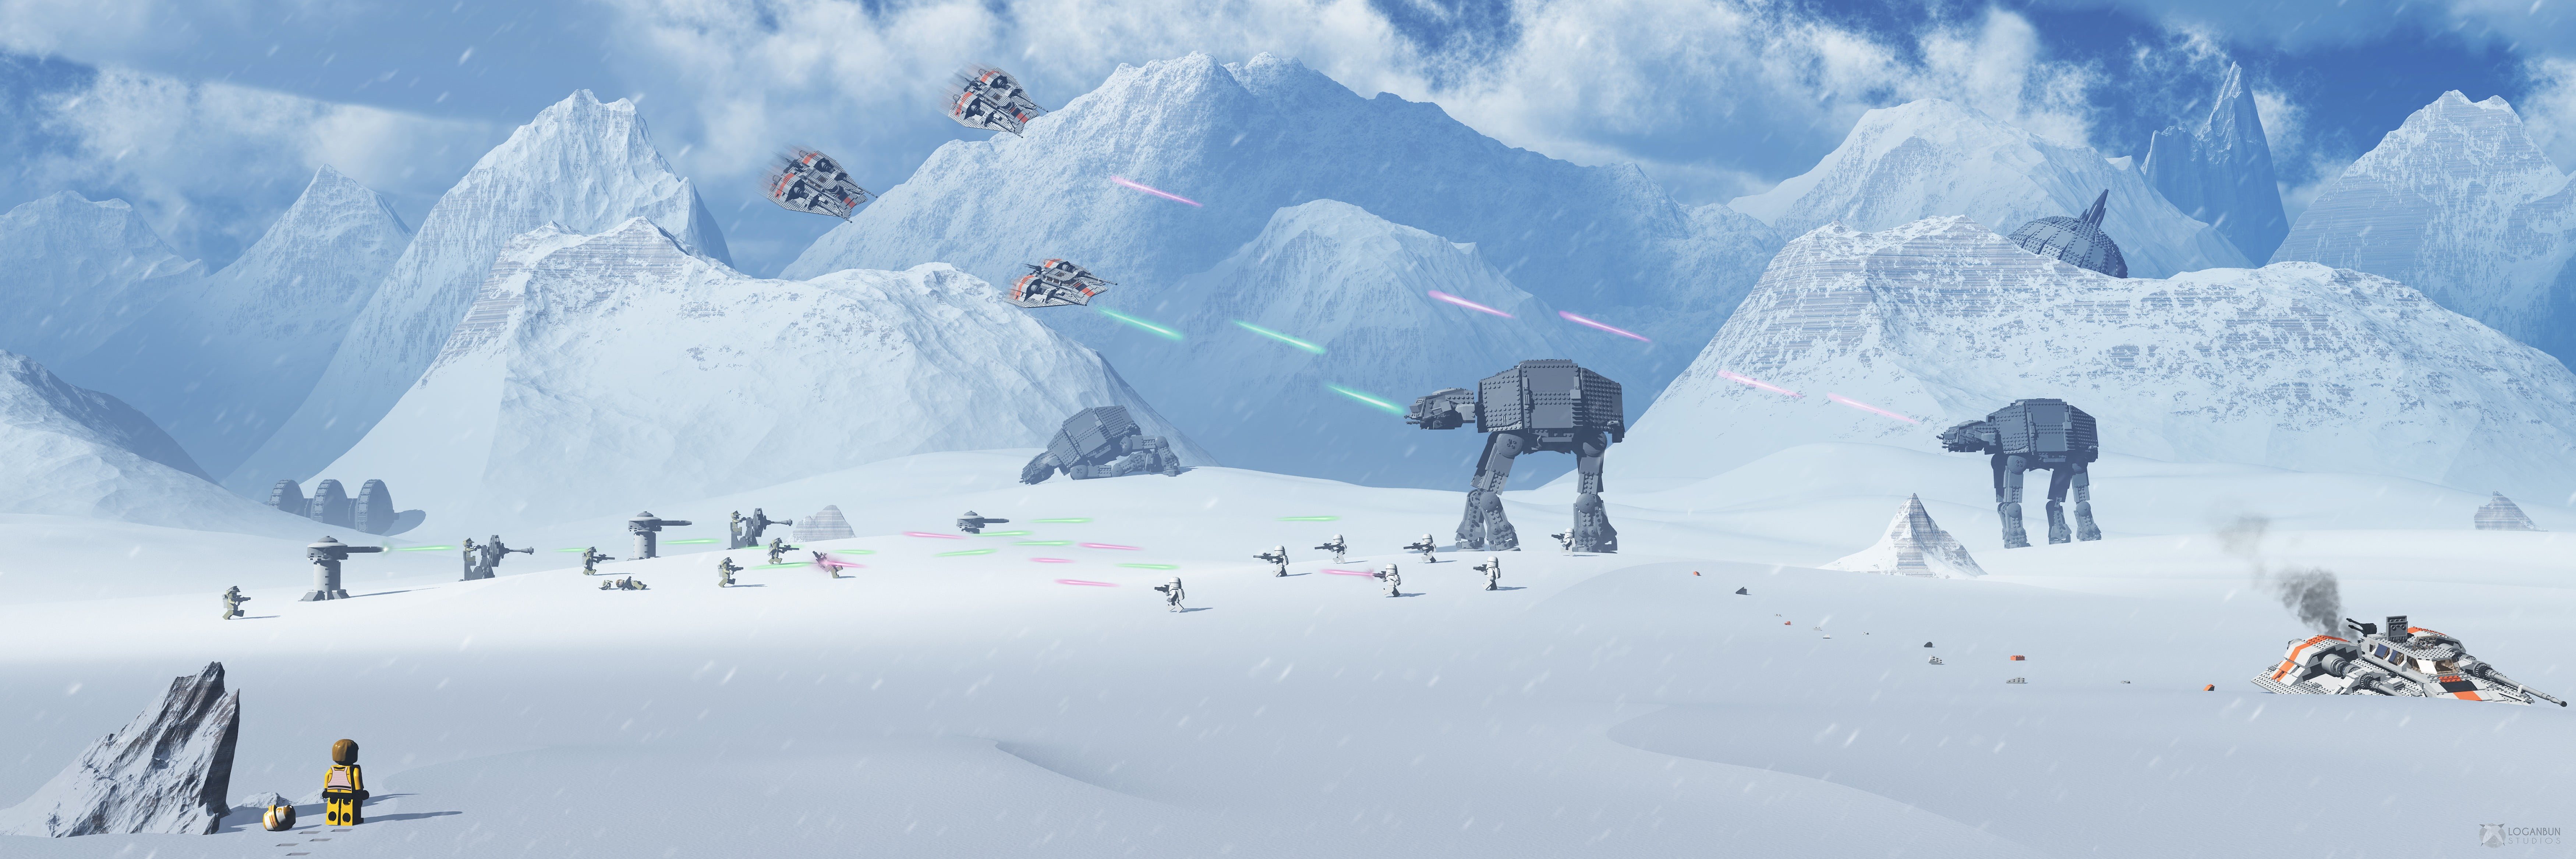 1080p Star Wars Hoth Wallpaper